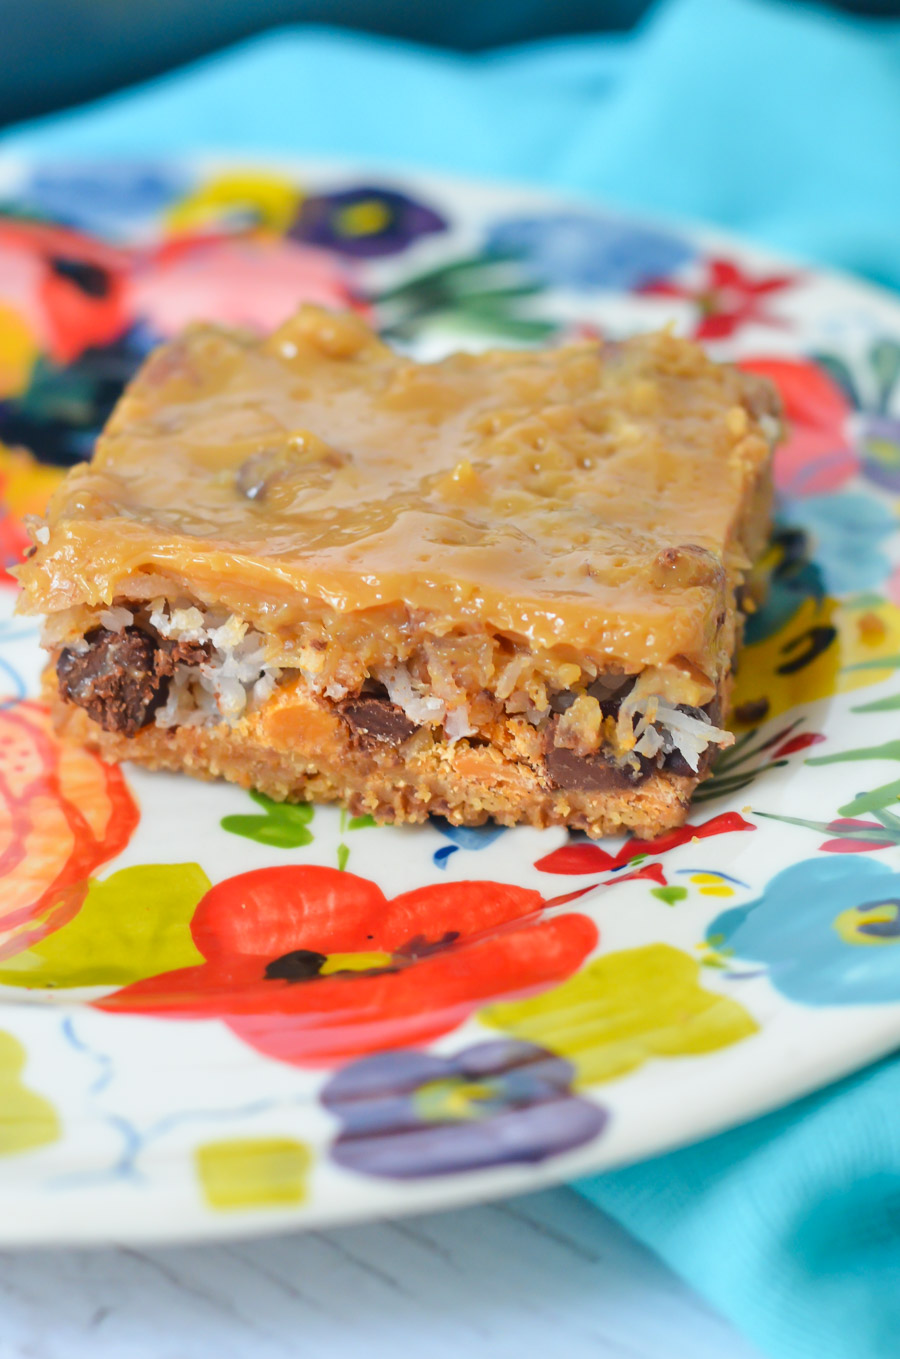 Dulce de Leche 7 Layer Bars - Magic Cookie Bars